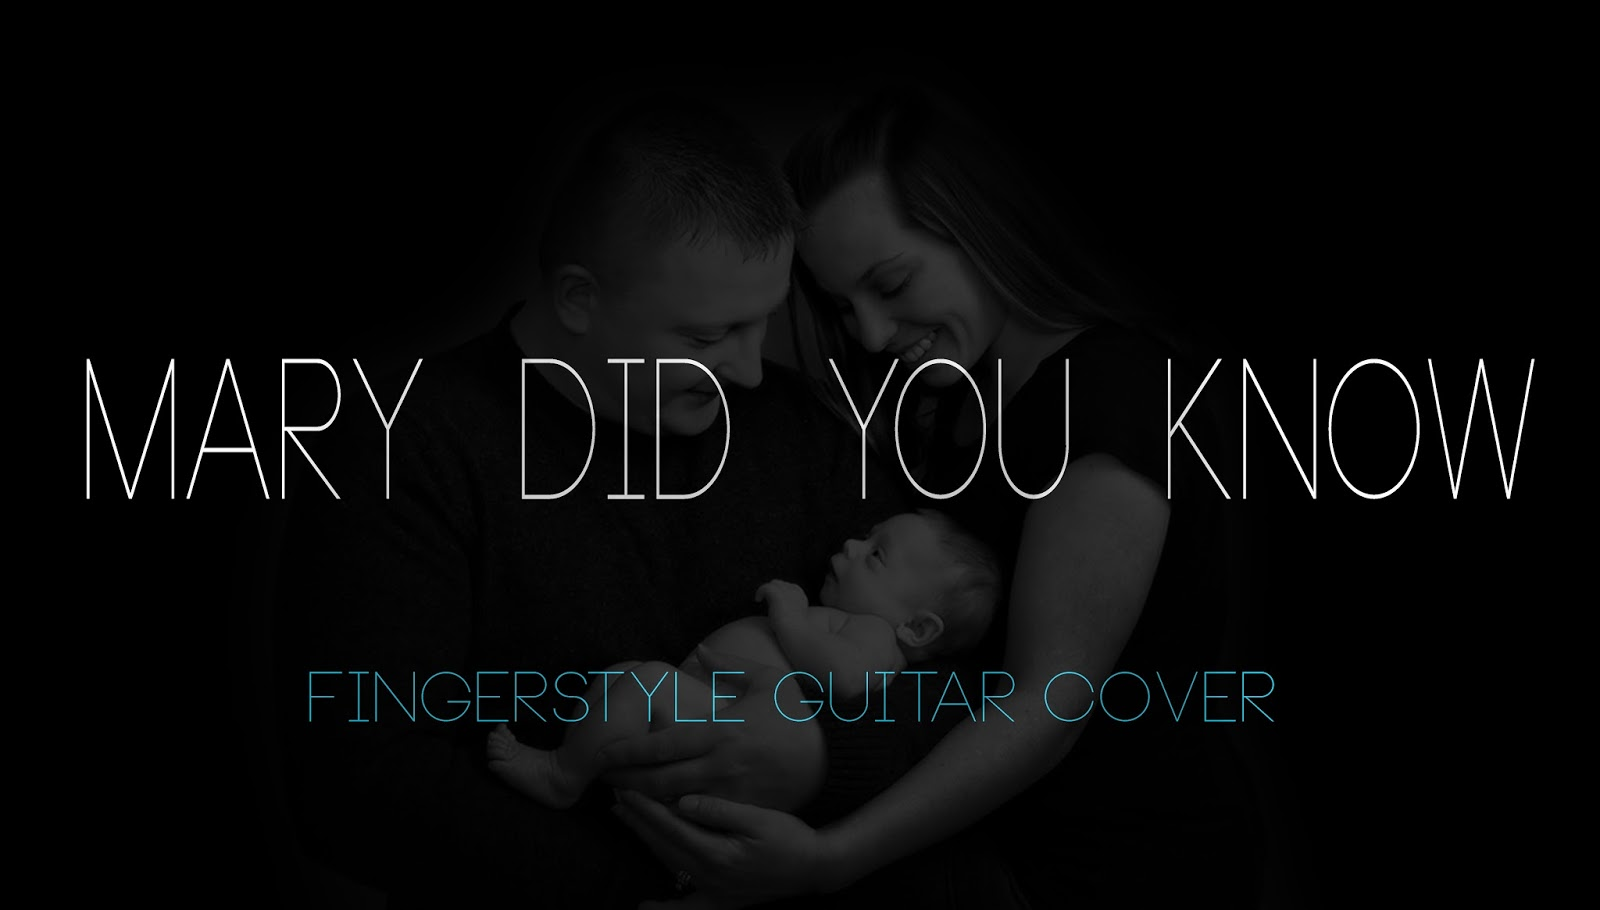 Guitar Chord Tab Lyric And Tutorial Mary Did You Know Fingerstyle